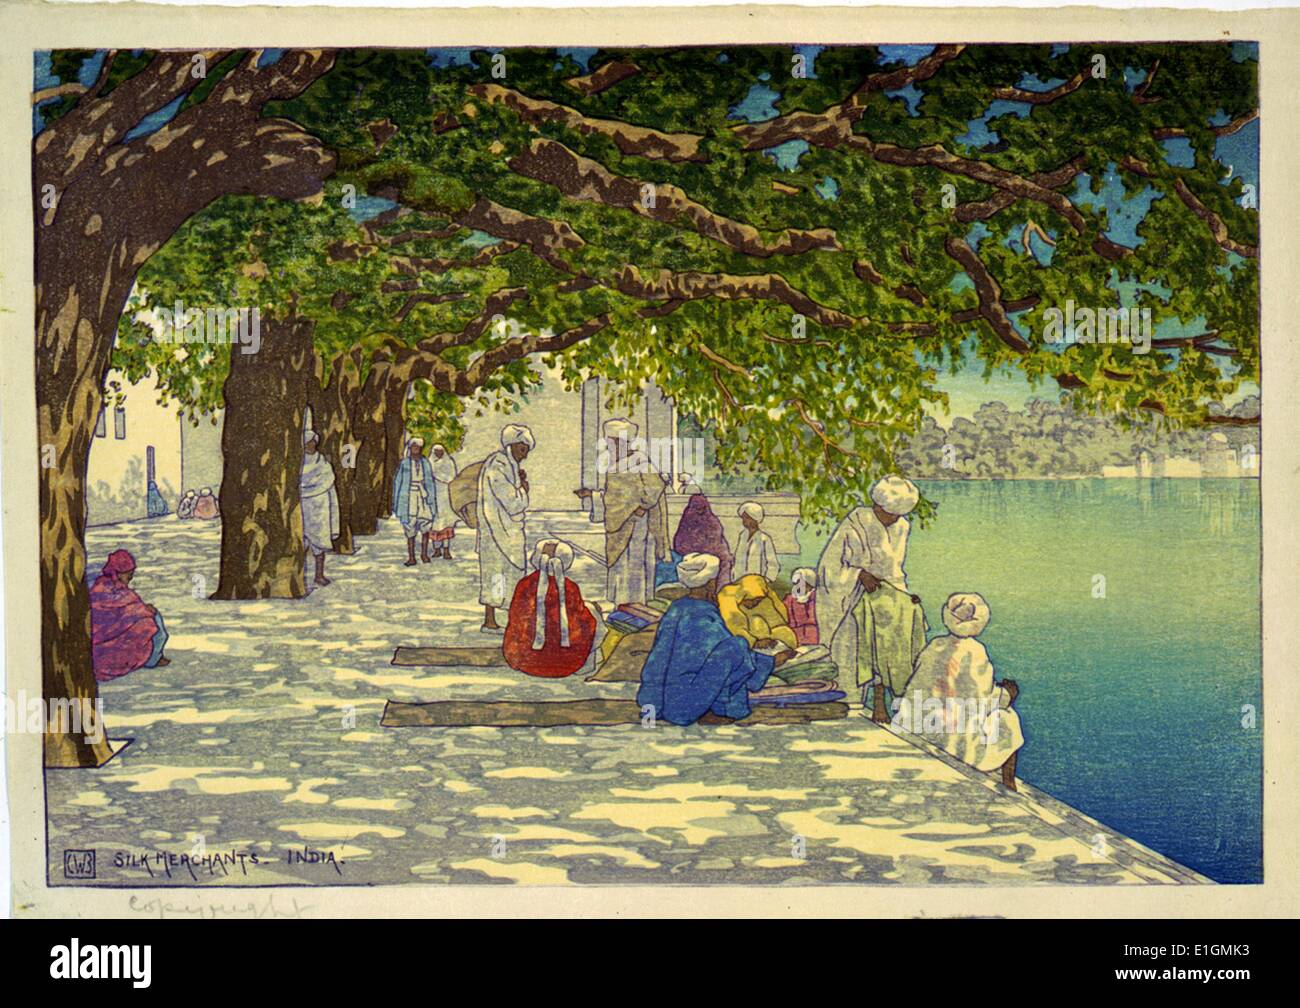 Painting of a group of silk merchants sitting by a river in India. - Stock Image